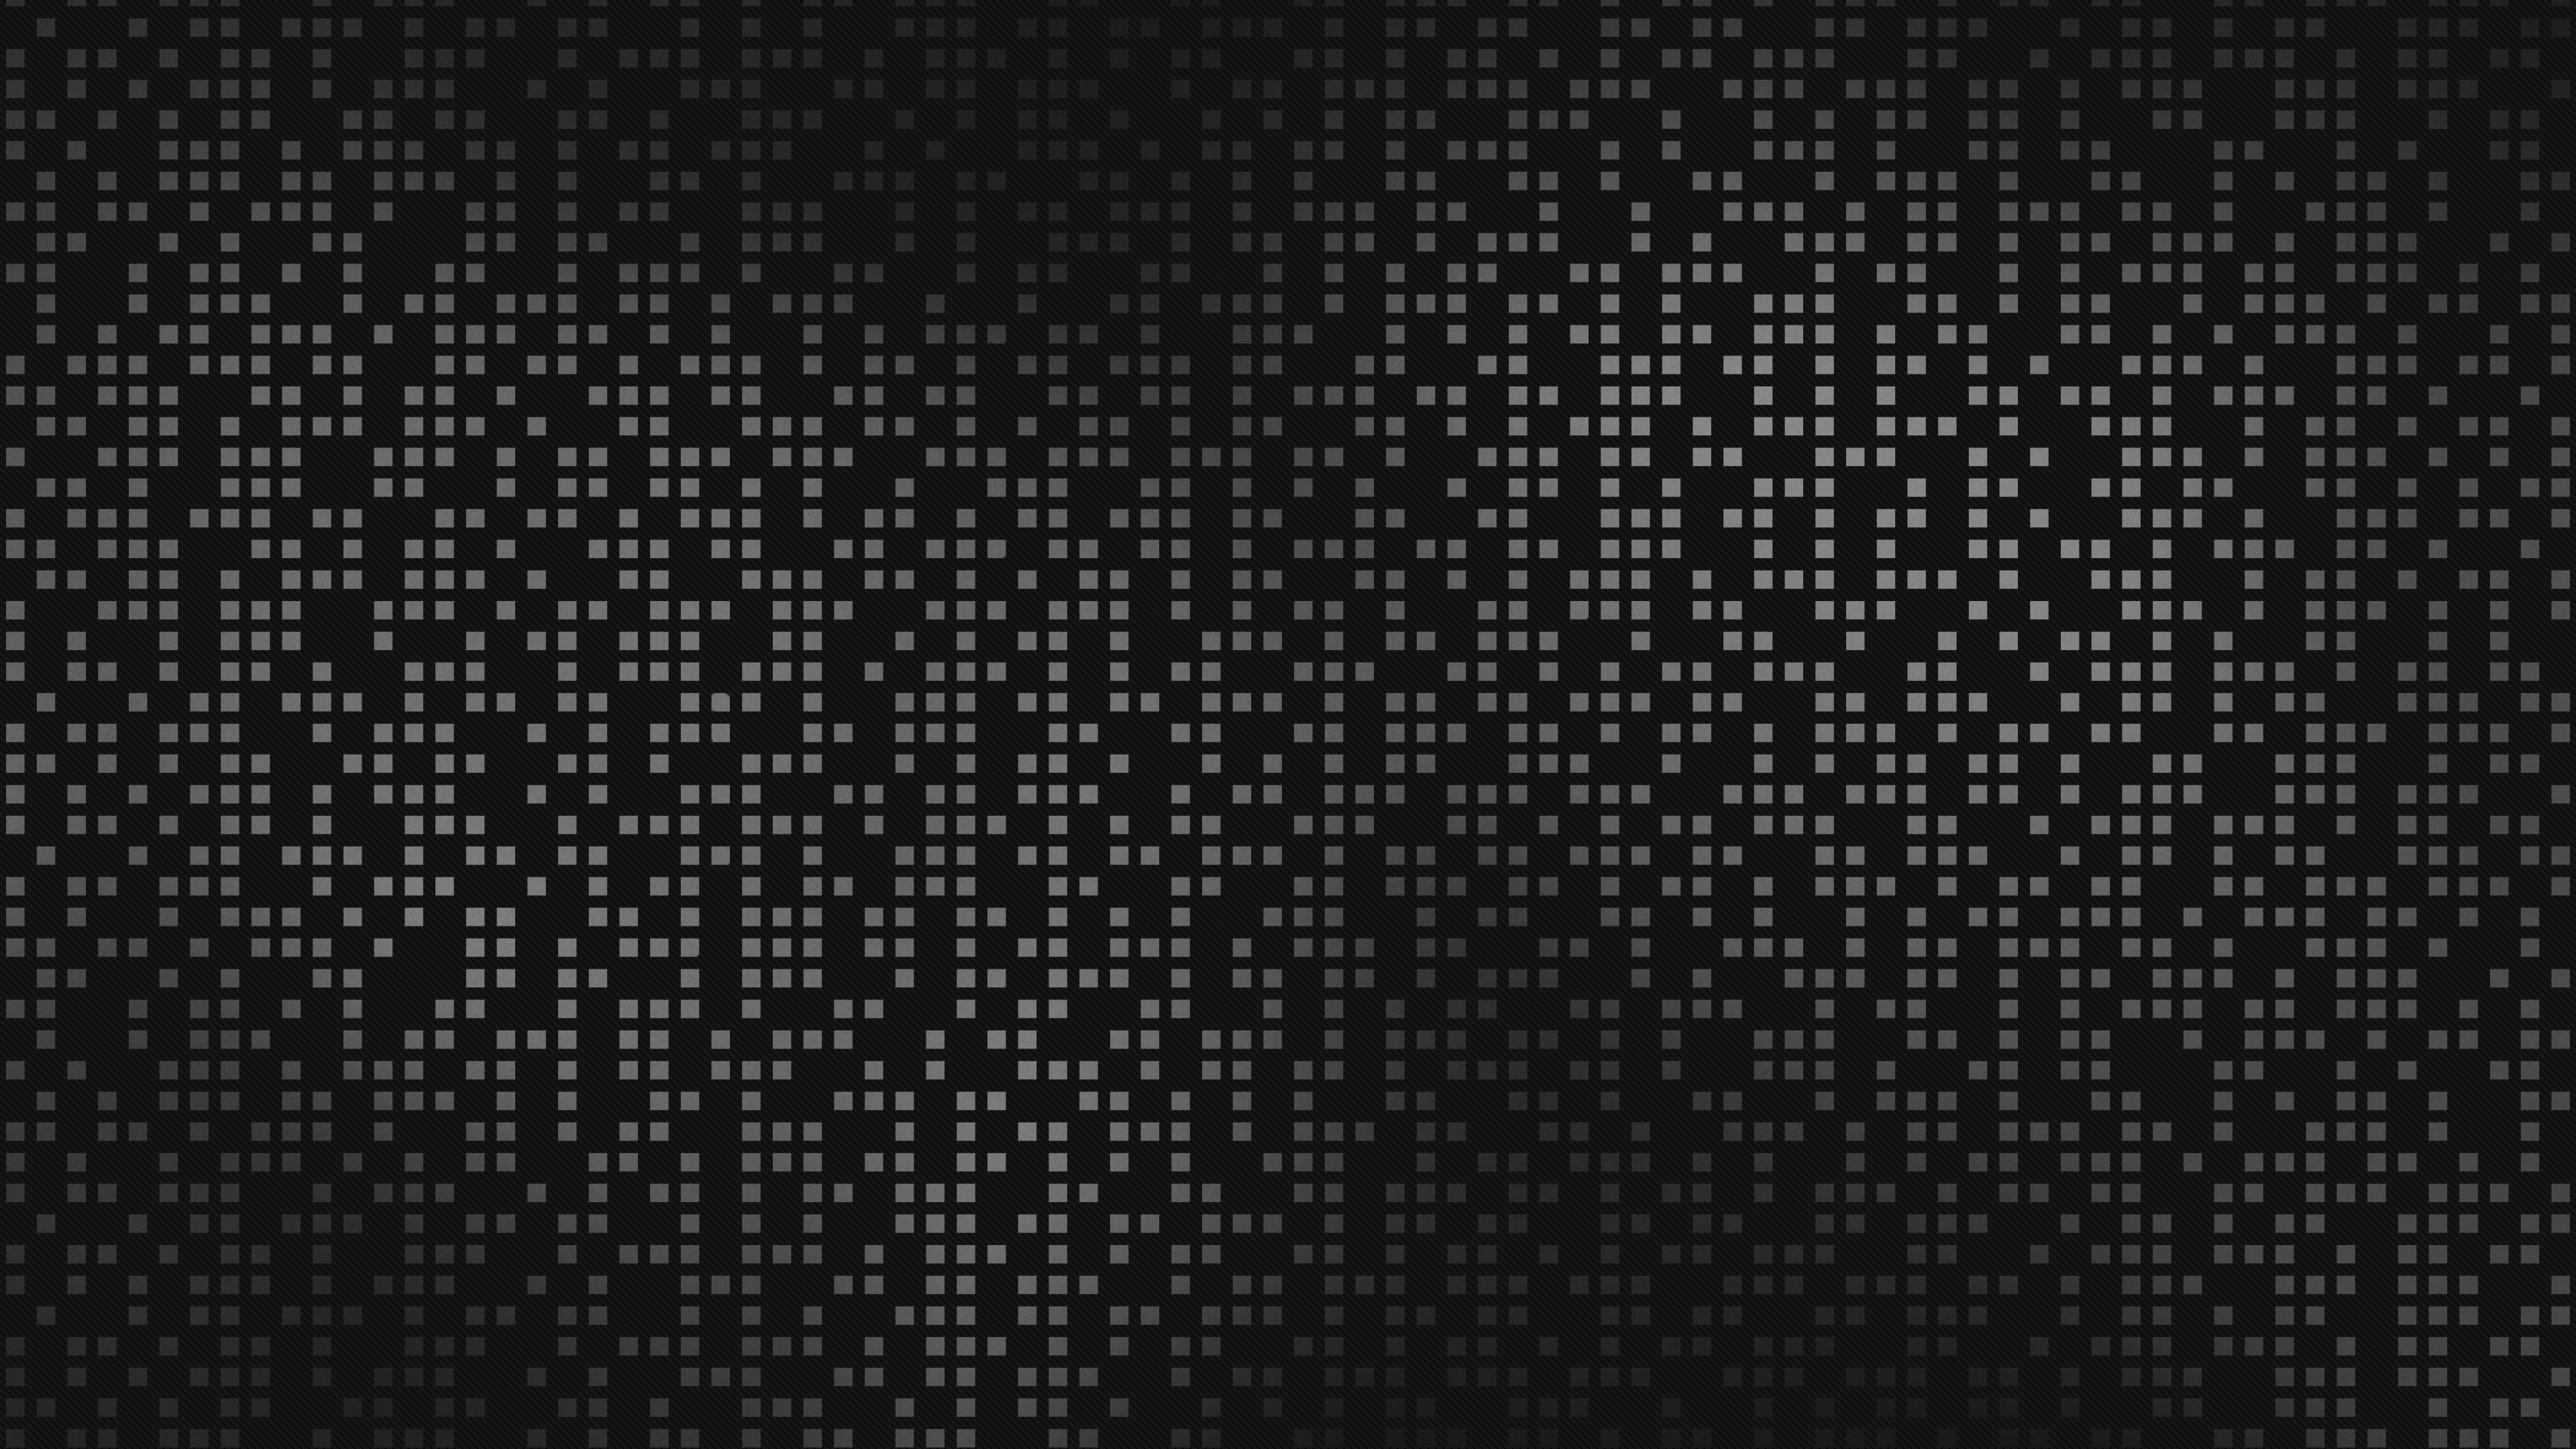 Black-And-Gray-Surface-Texture-Pixels-Points-Wave-WallpapersByte-com-3840x2160.jpg